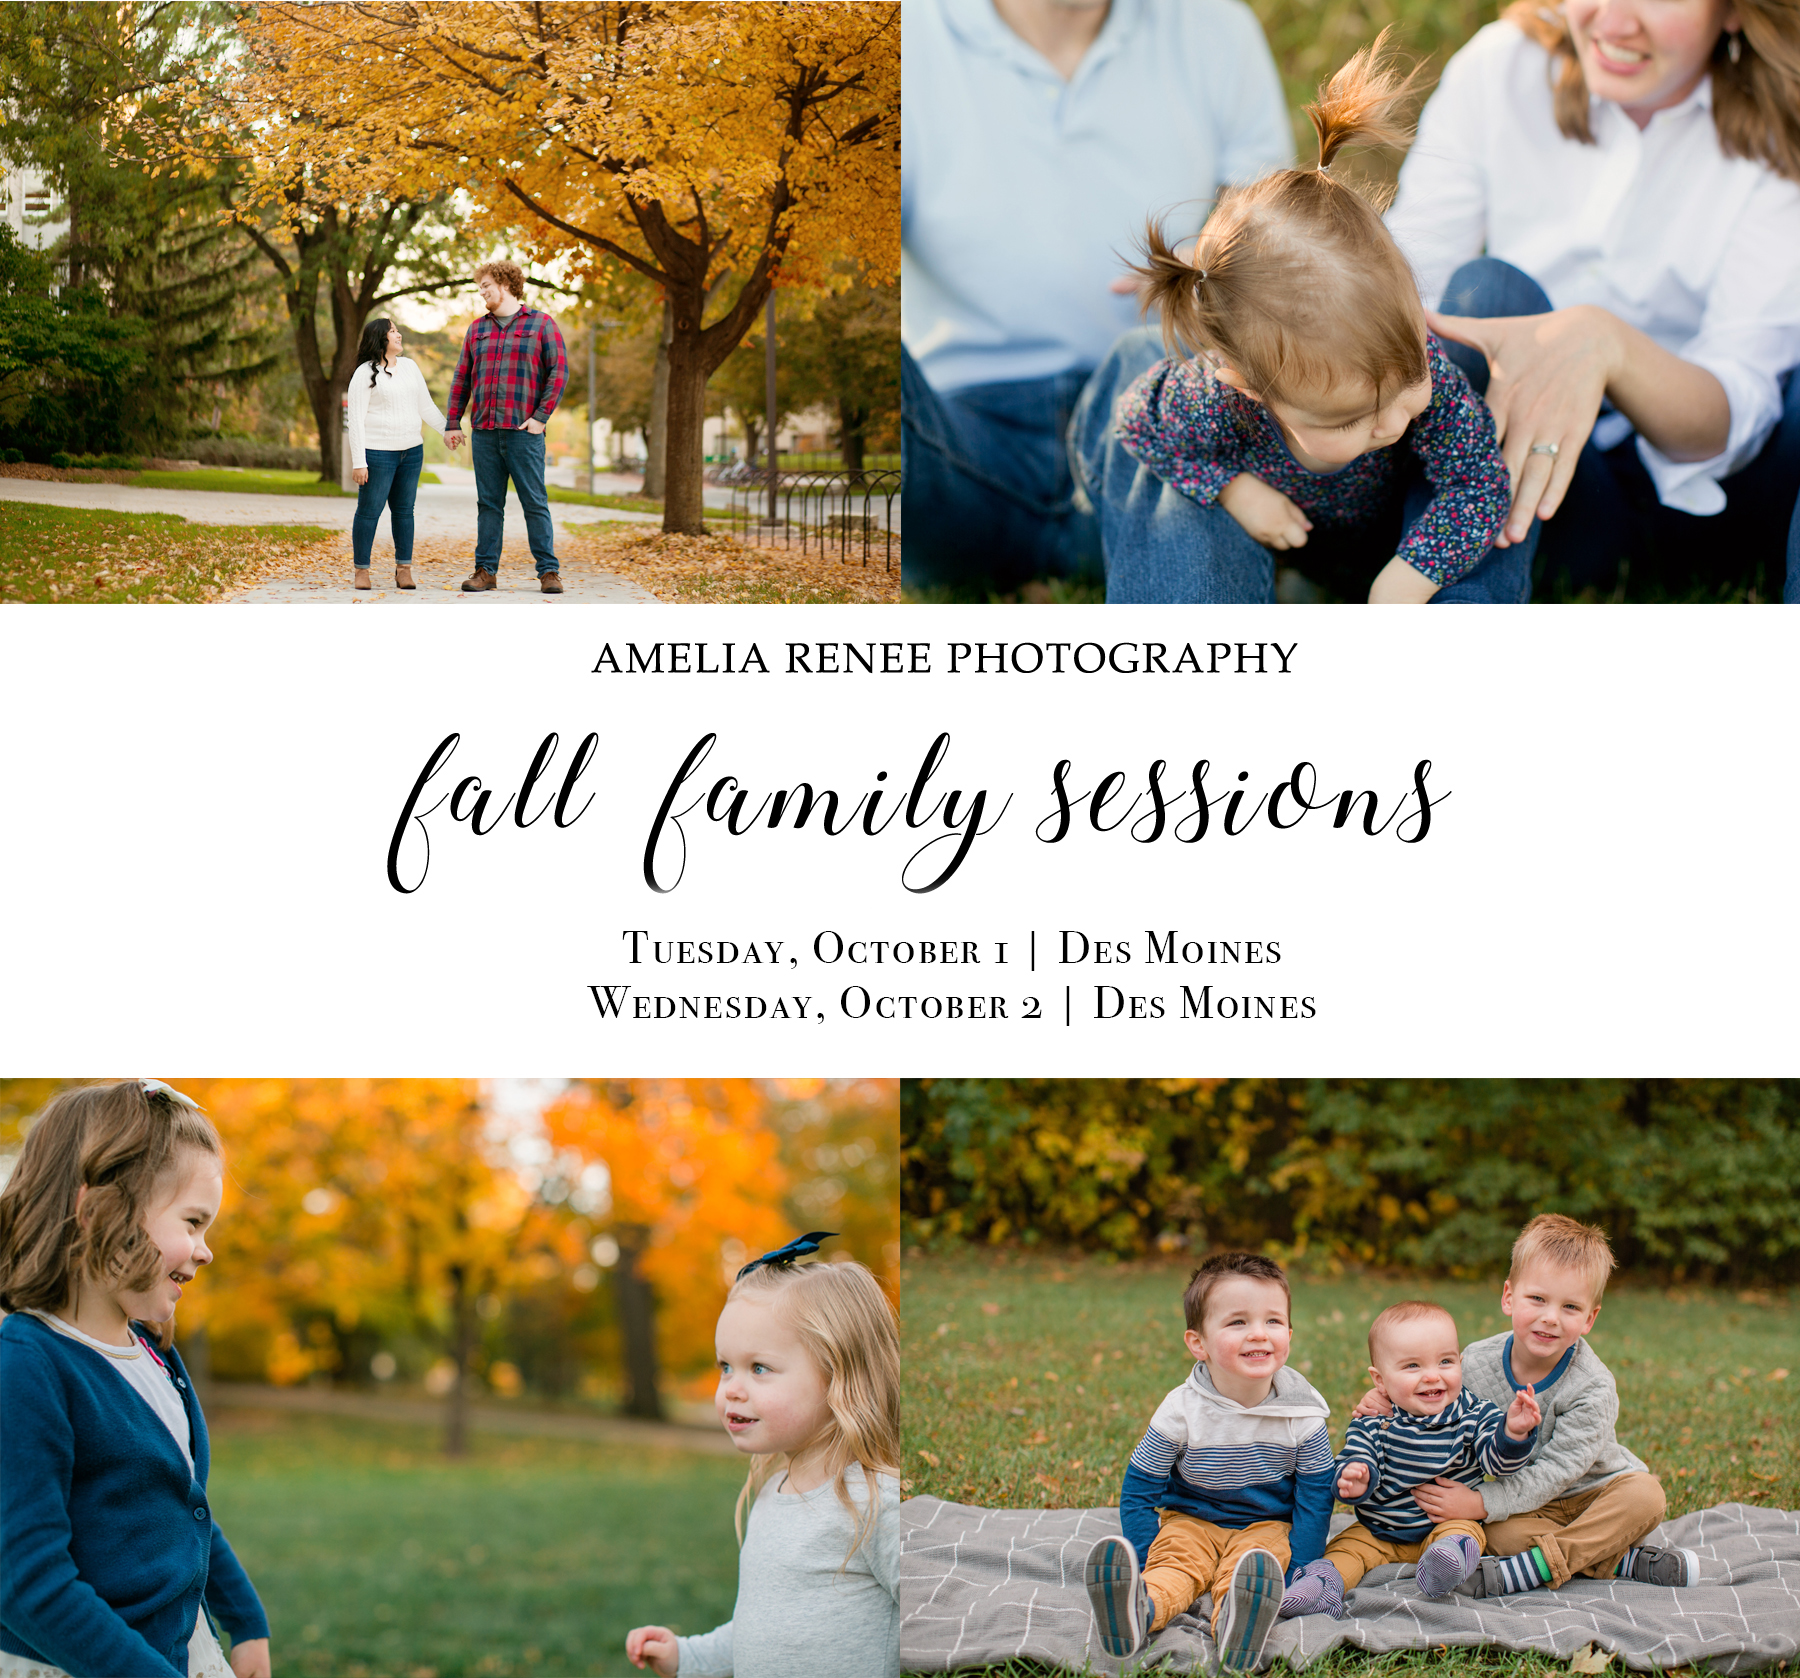 des moines iowa family fall photography 2019